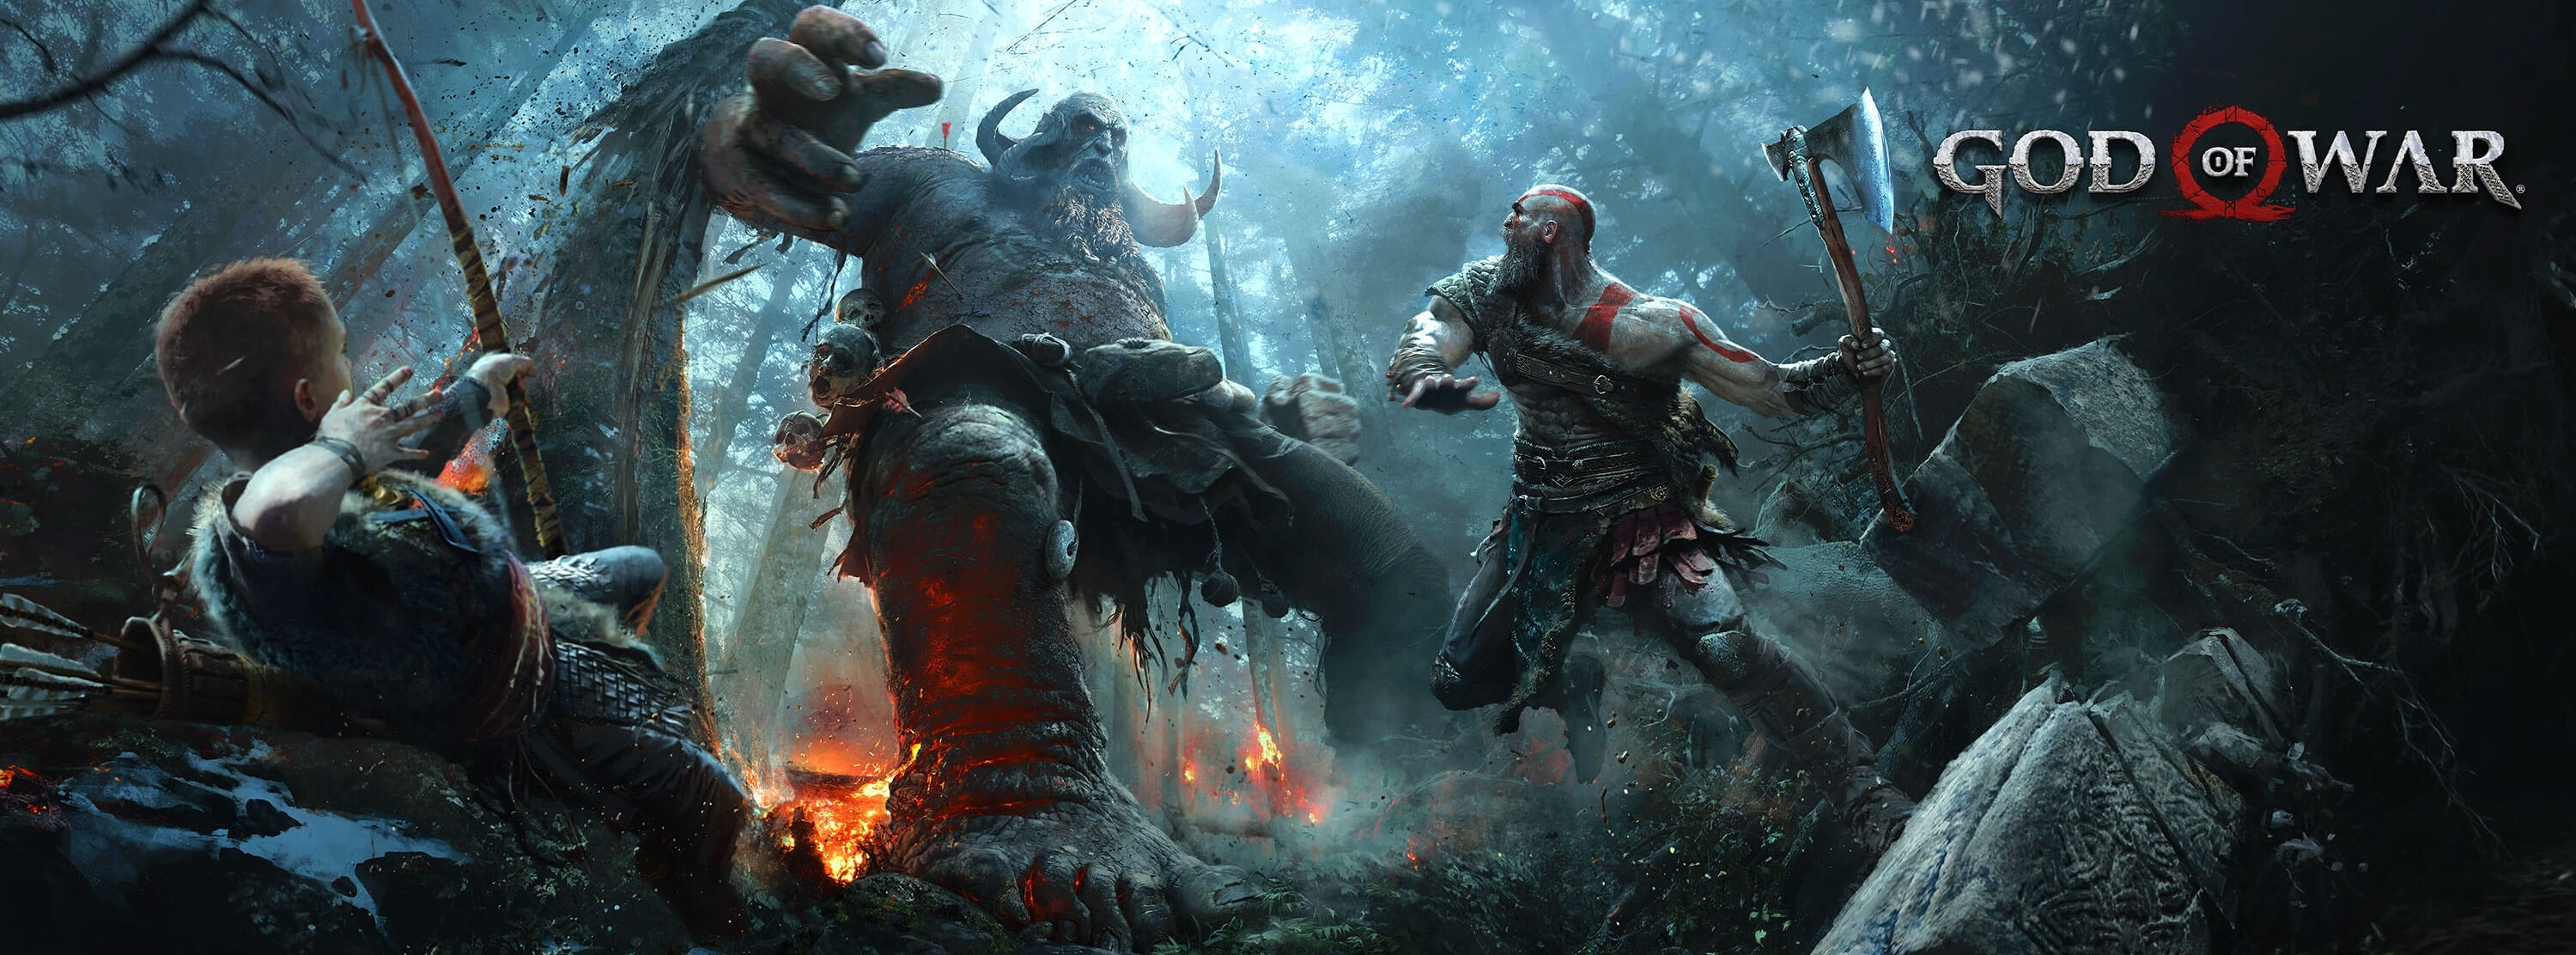 50 god of war (2018) hd wallpapers | background images - wallpaper abyss